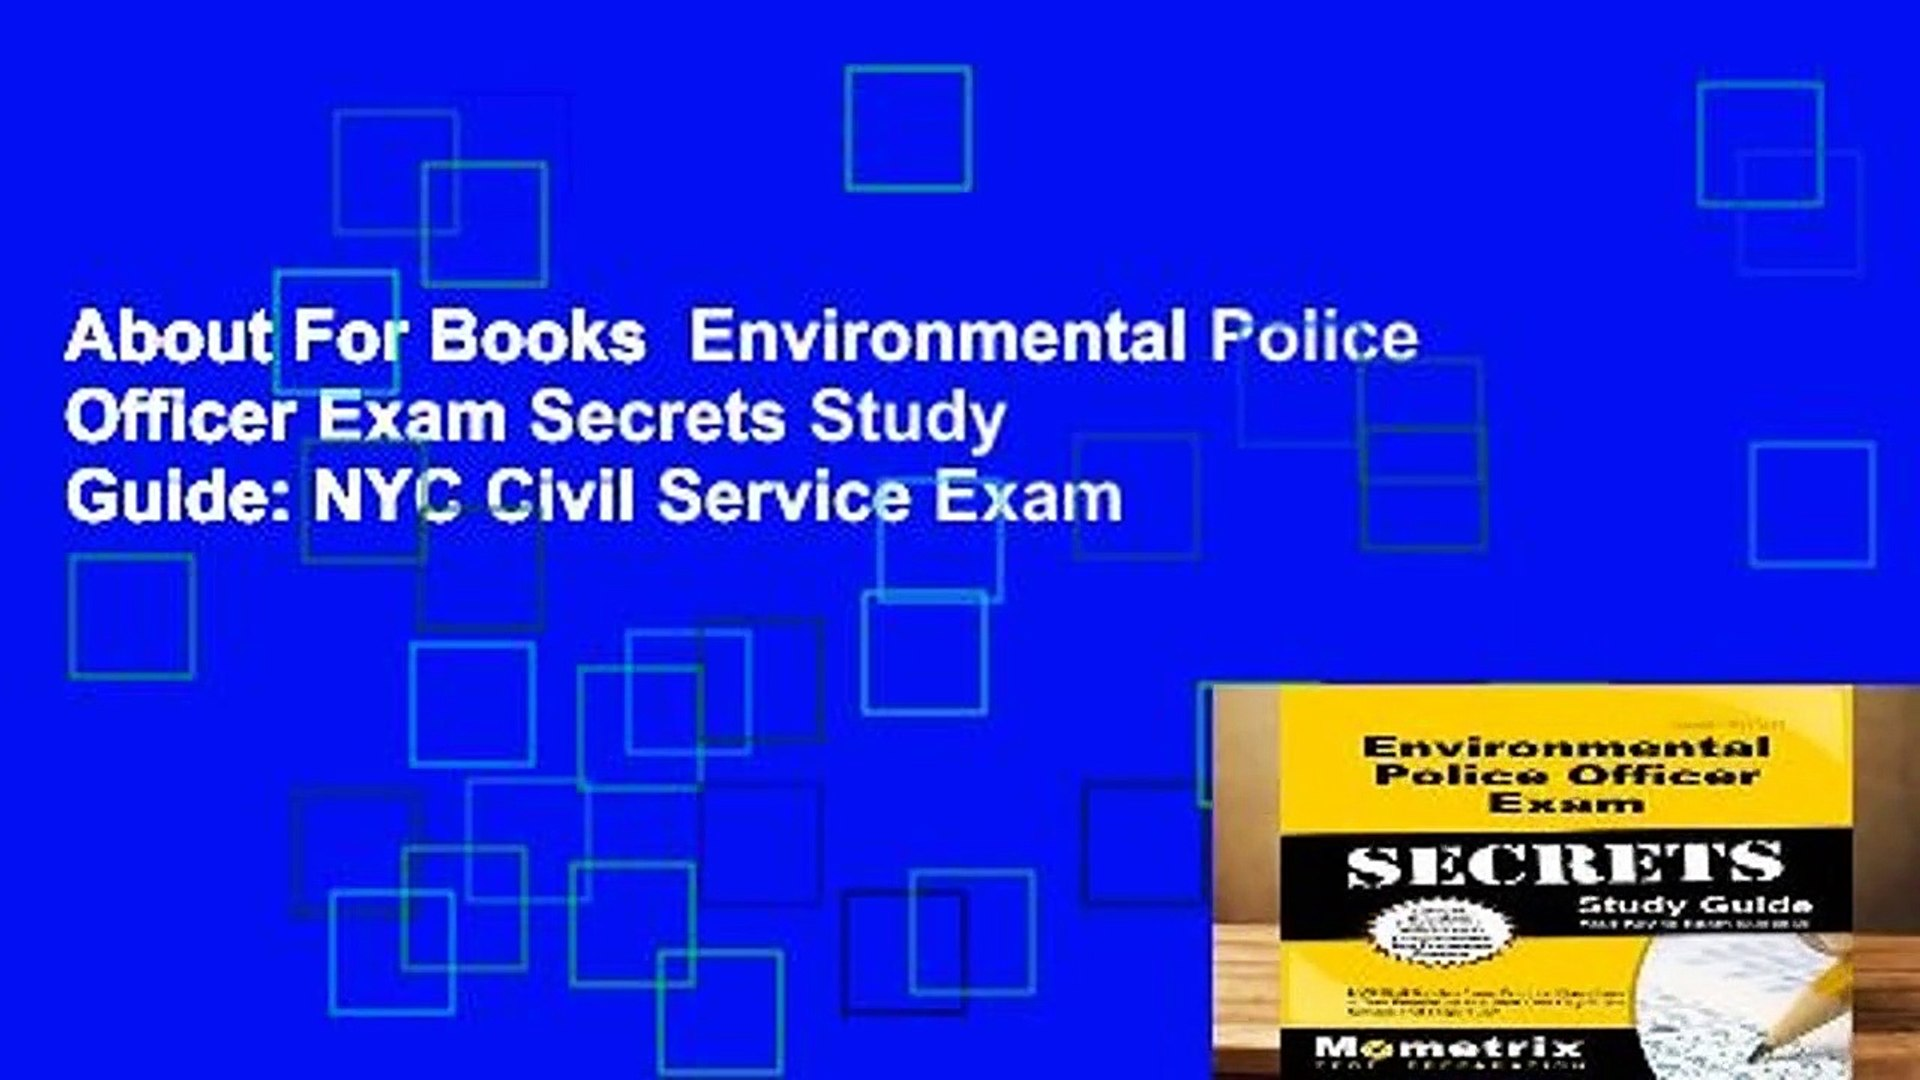 About For Books Environmental Police Officer Exam Secrets Study Guide: NYC  Civil Service Exam